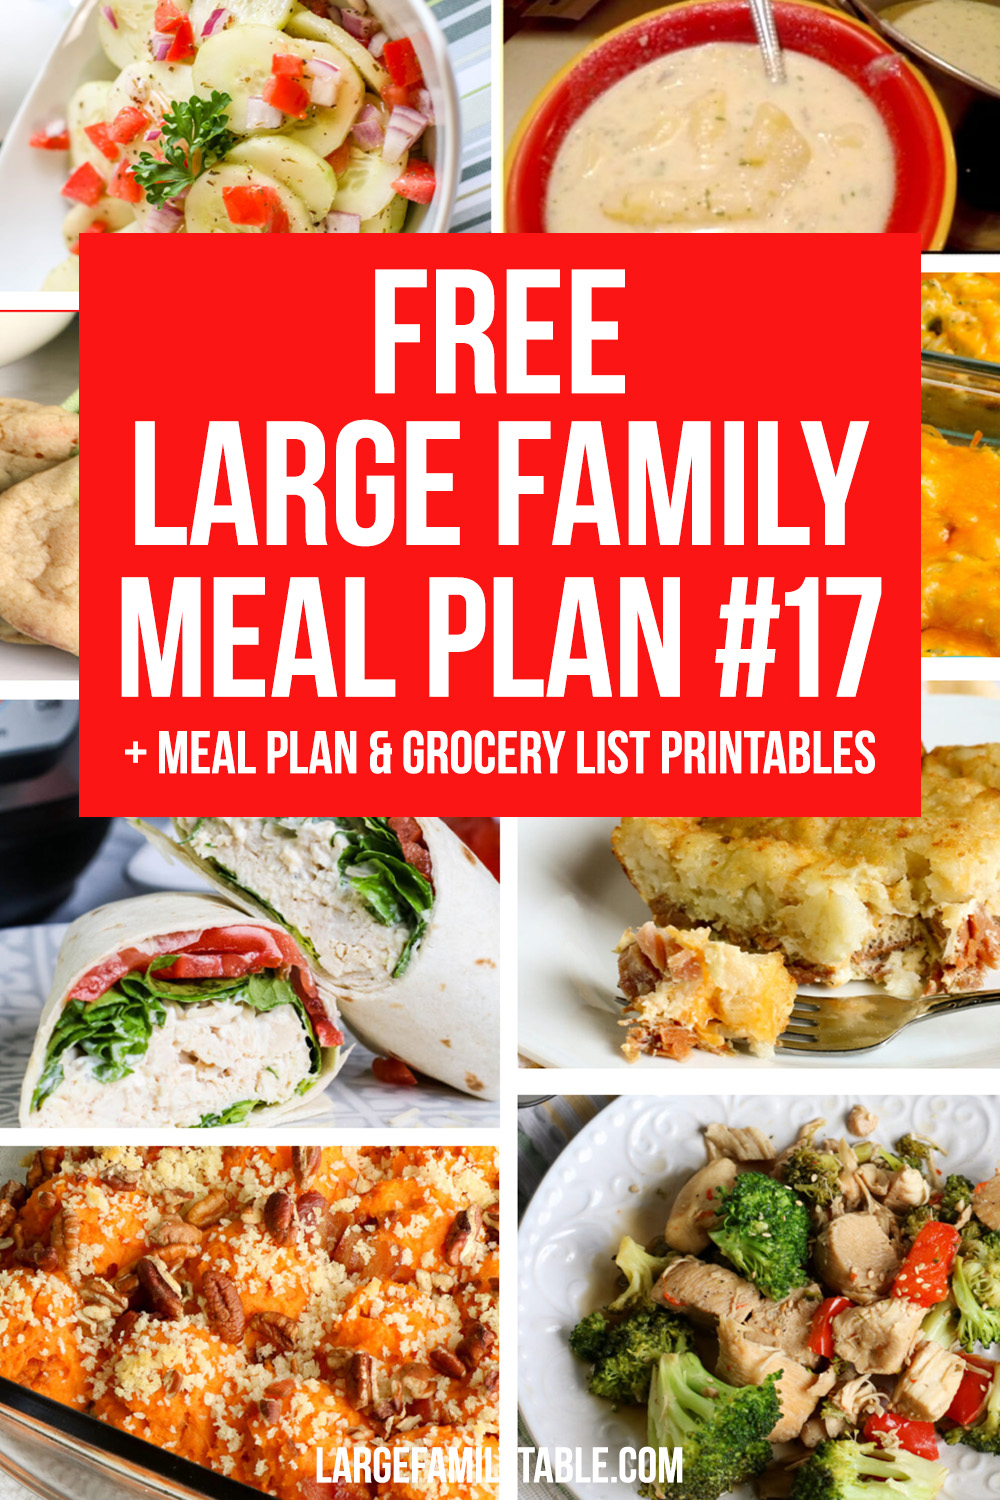 Week 17 Large Family Weekly Meal Plan Free Grocery List Printables For A Large Family On A Budget Large Family Table